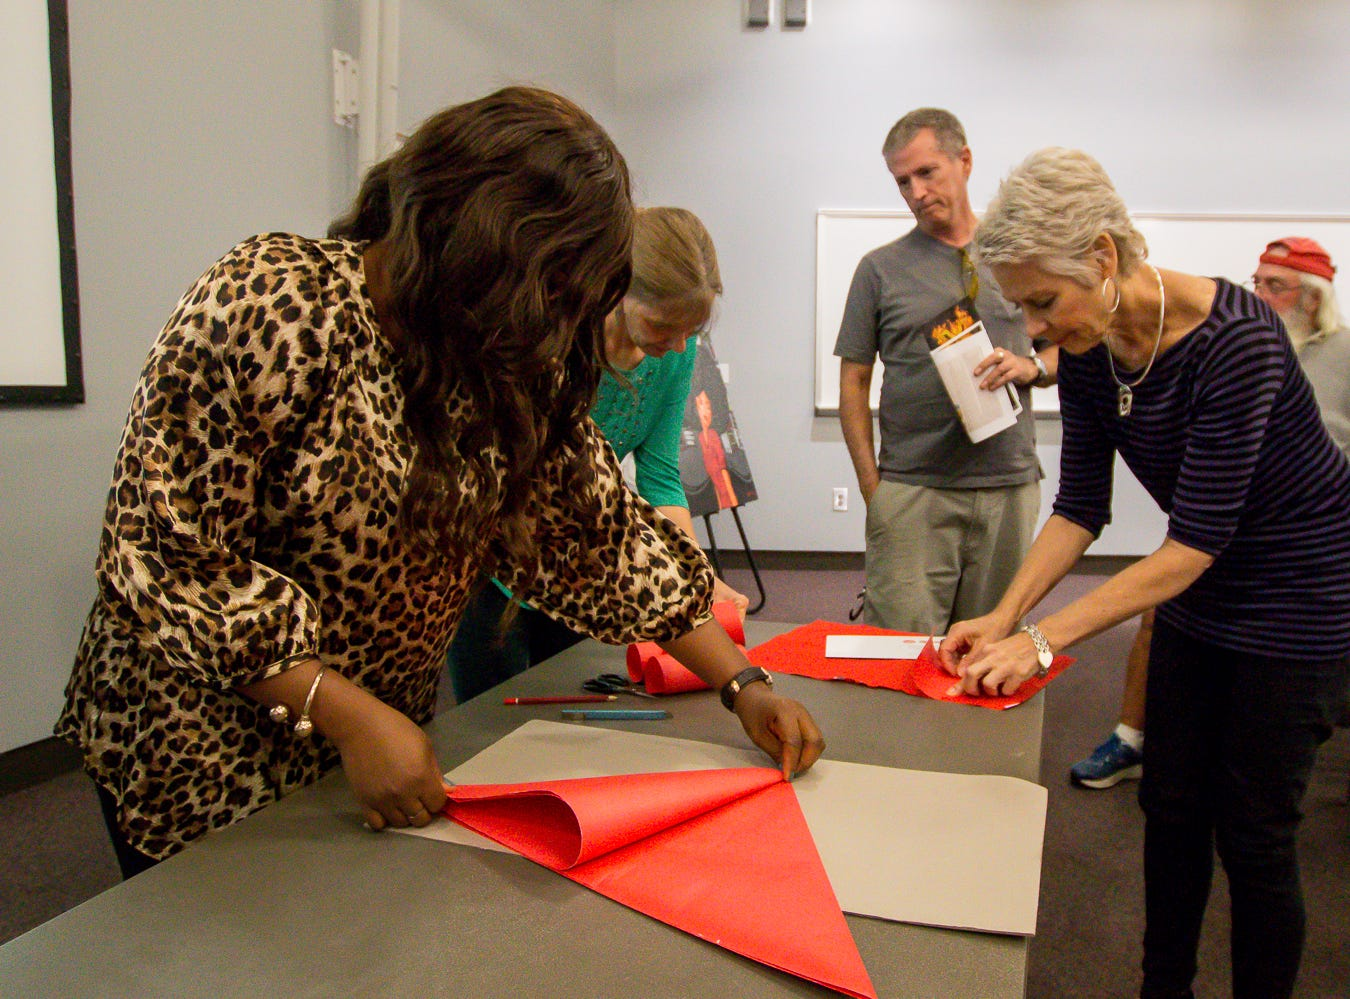 The Great Gulfcoast Arts Festival's Invited International Artist Abigail Nnaji, of Abuja, Nigeria, left, demonstrates how she uses the Chinese paper cutting technique during a presentation in the Anna Lamar Switzer Building at Pensacola State College on Tuesday, October 30, 2018.